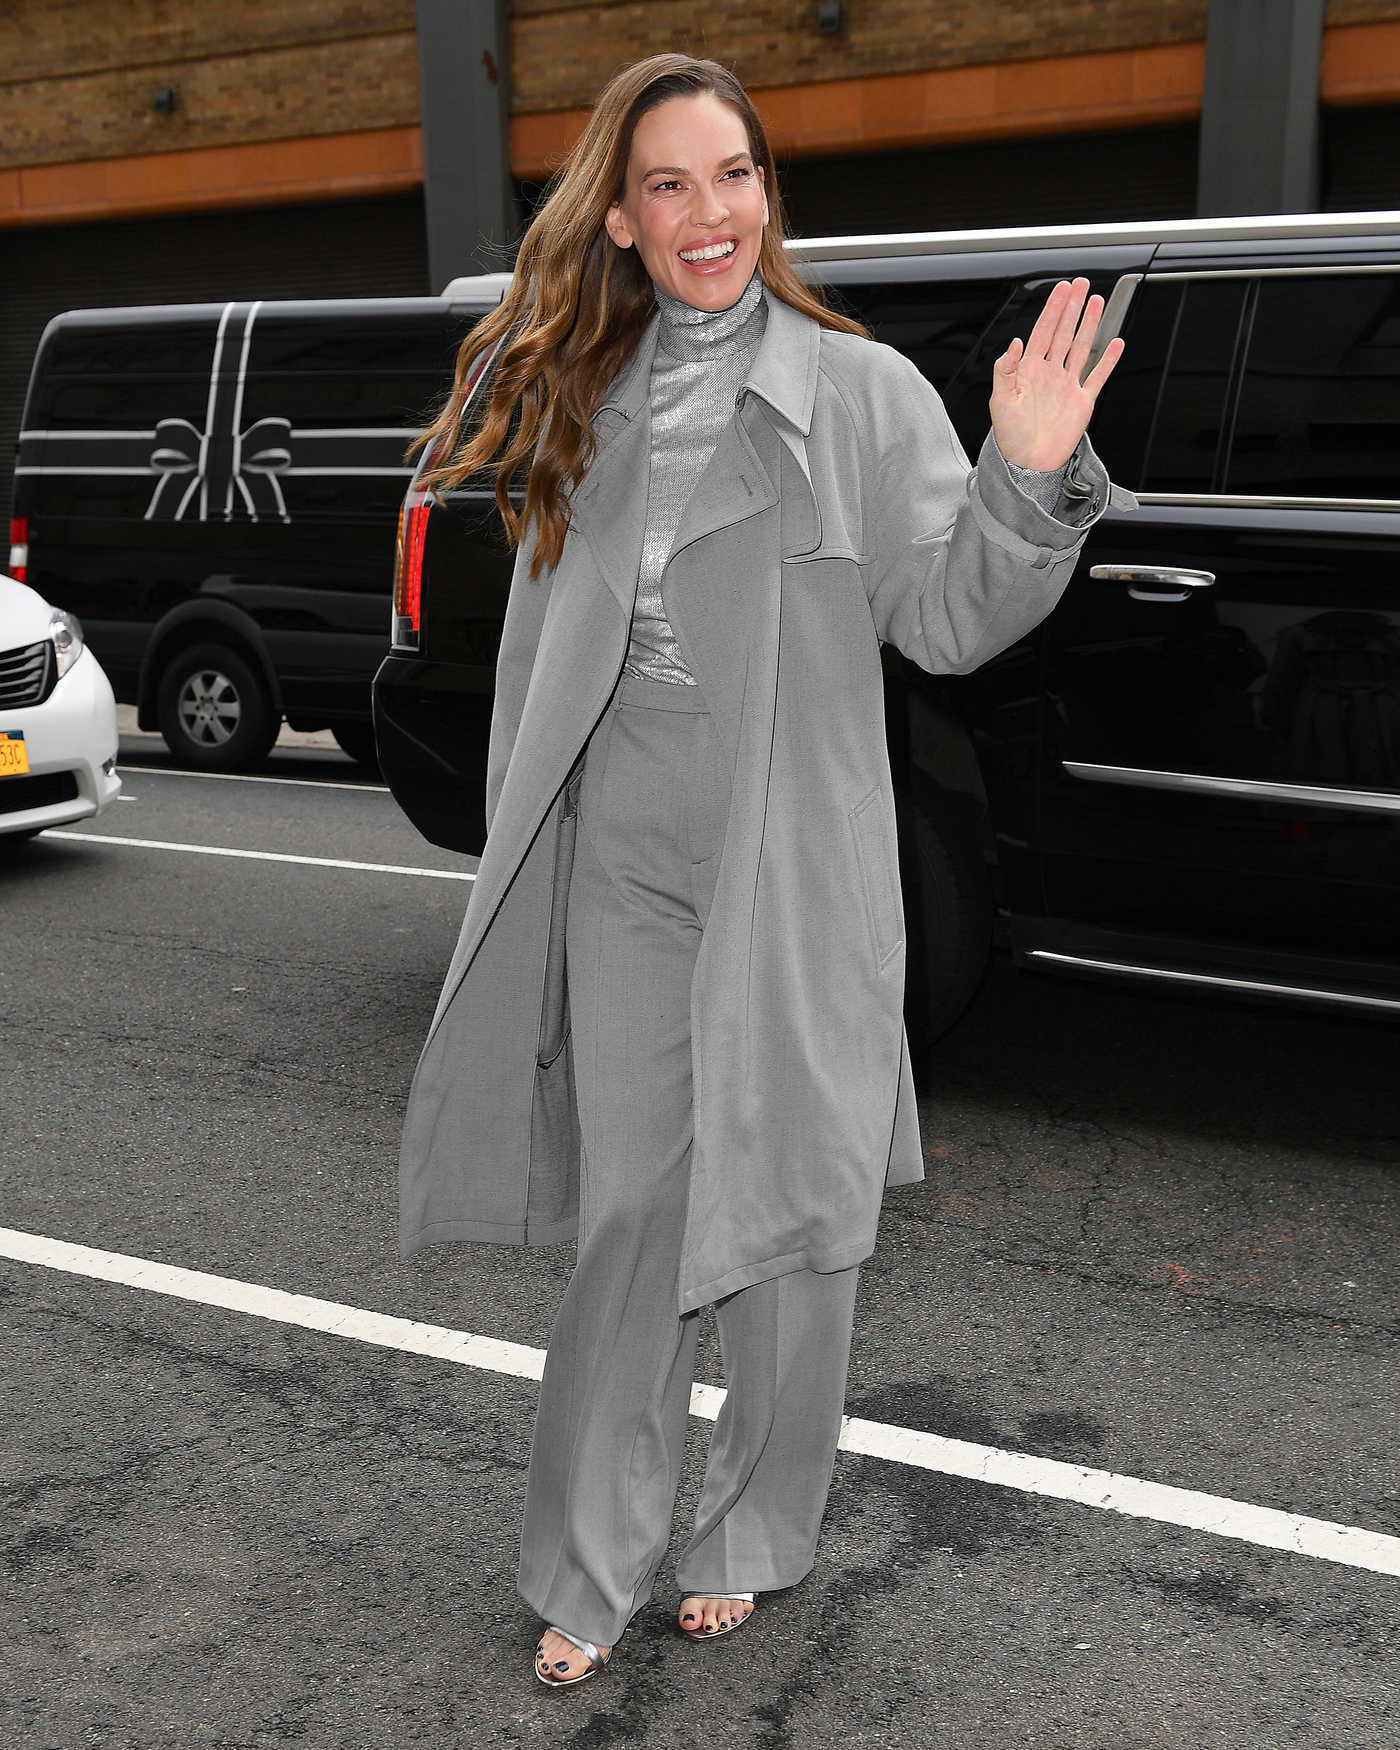 Hilary Swank Wears a Grey Coat Out in New York City 02/12/2018